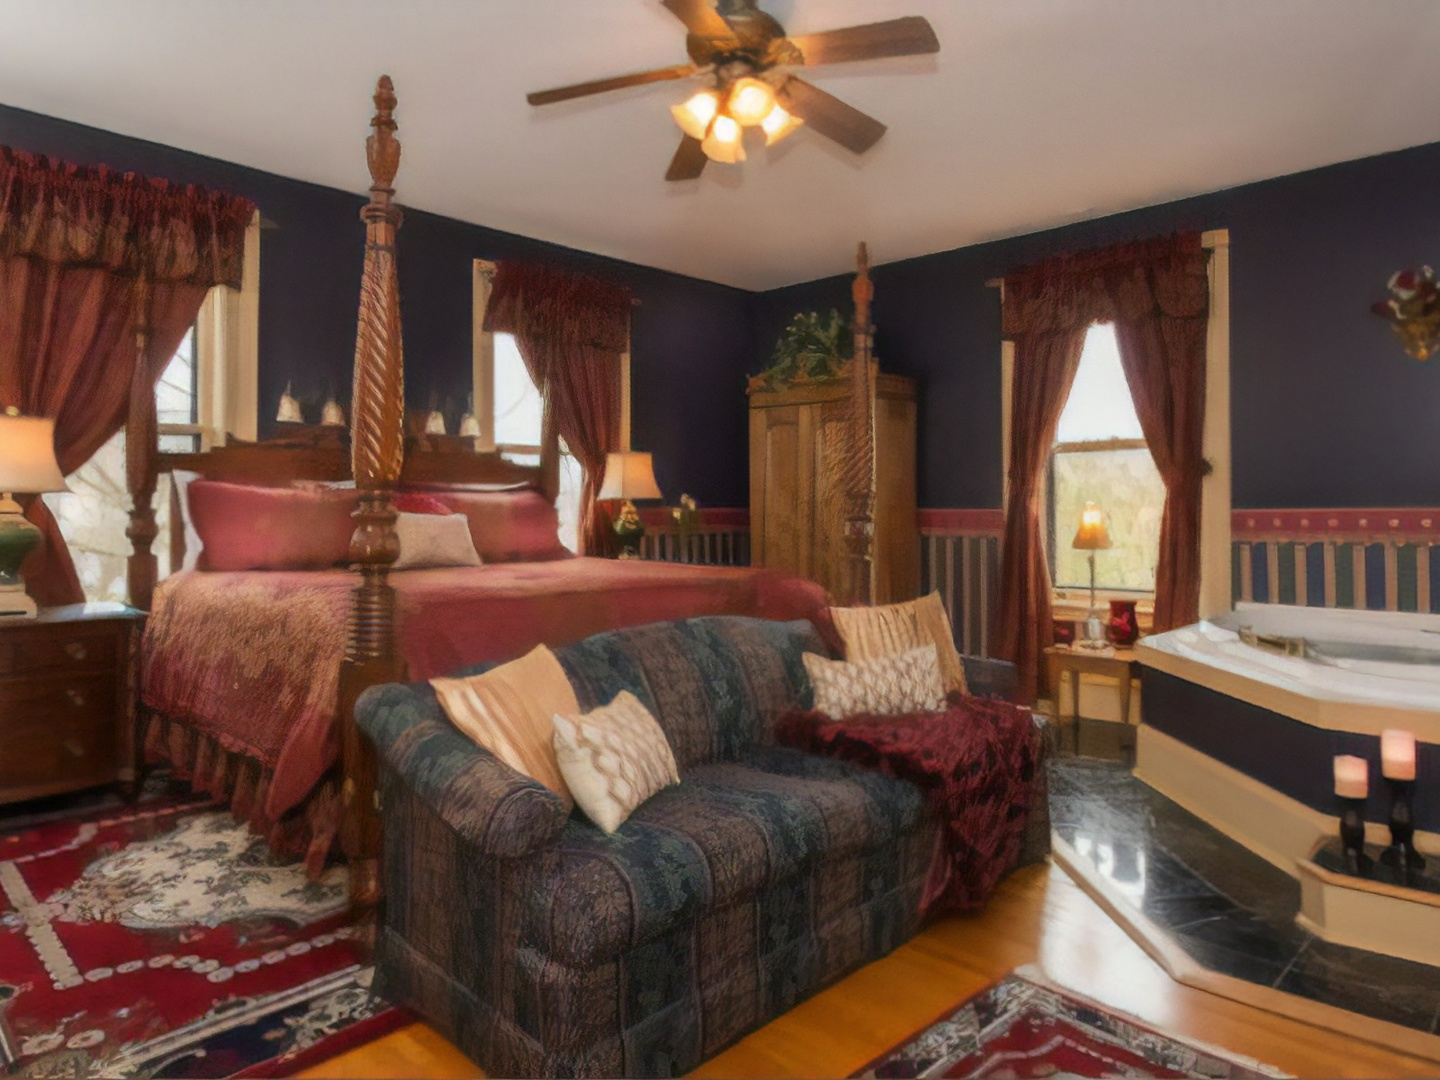 A living room filled with furniture and a fire place at 1840 Inn On the Main Bed and Breakfast.